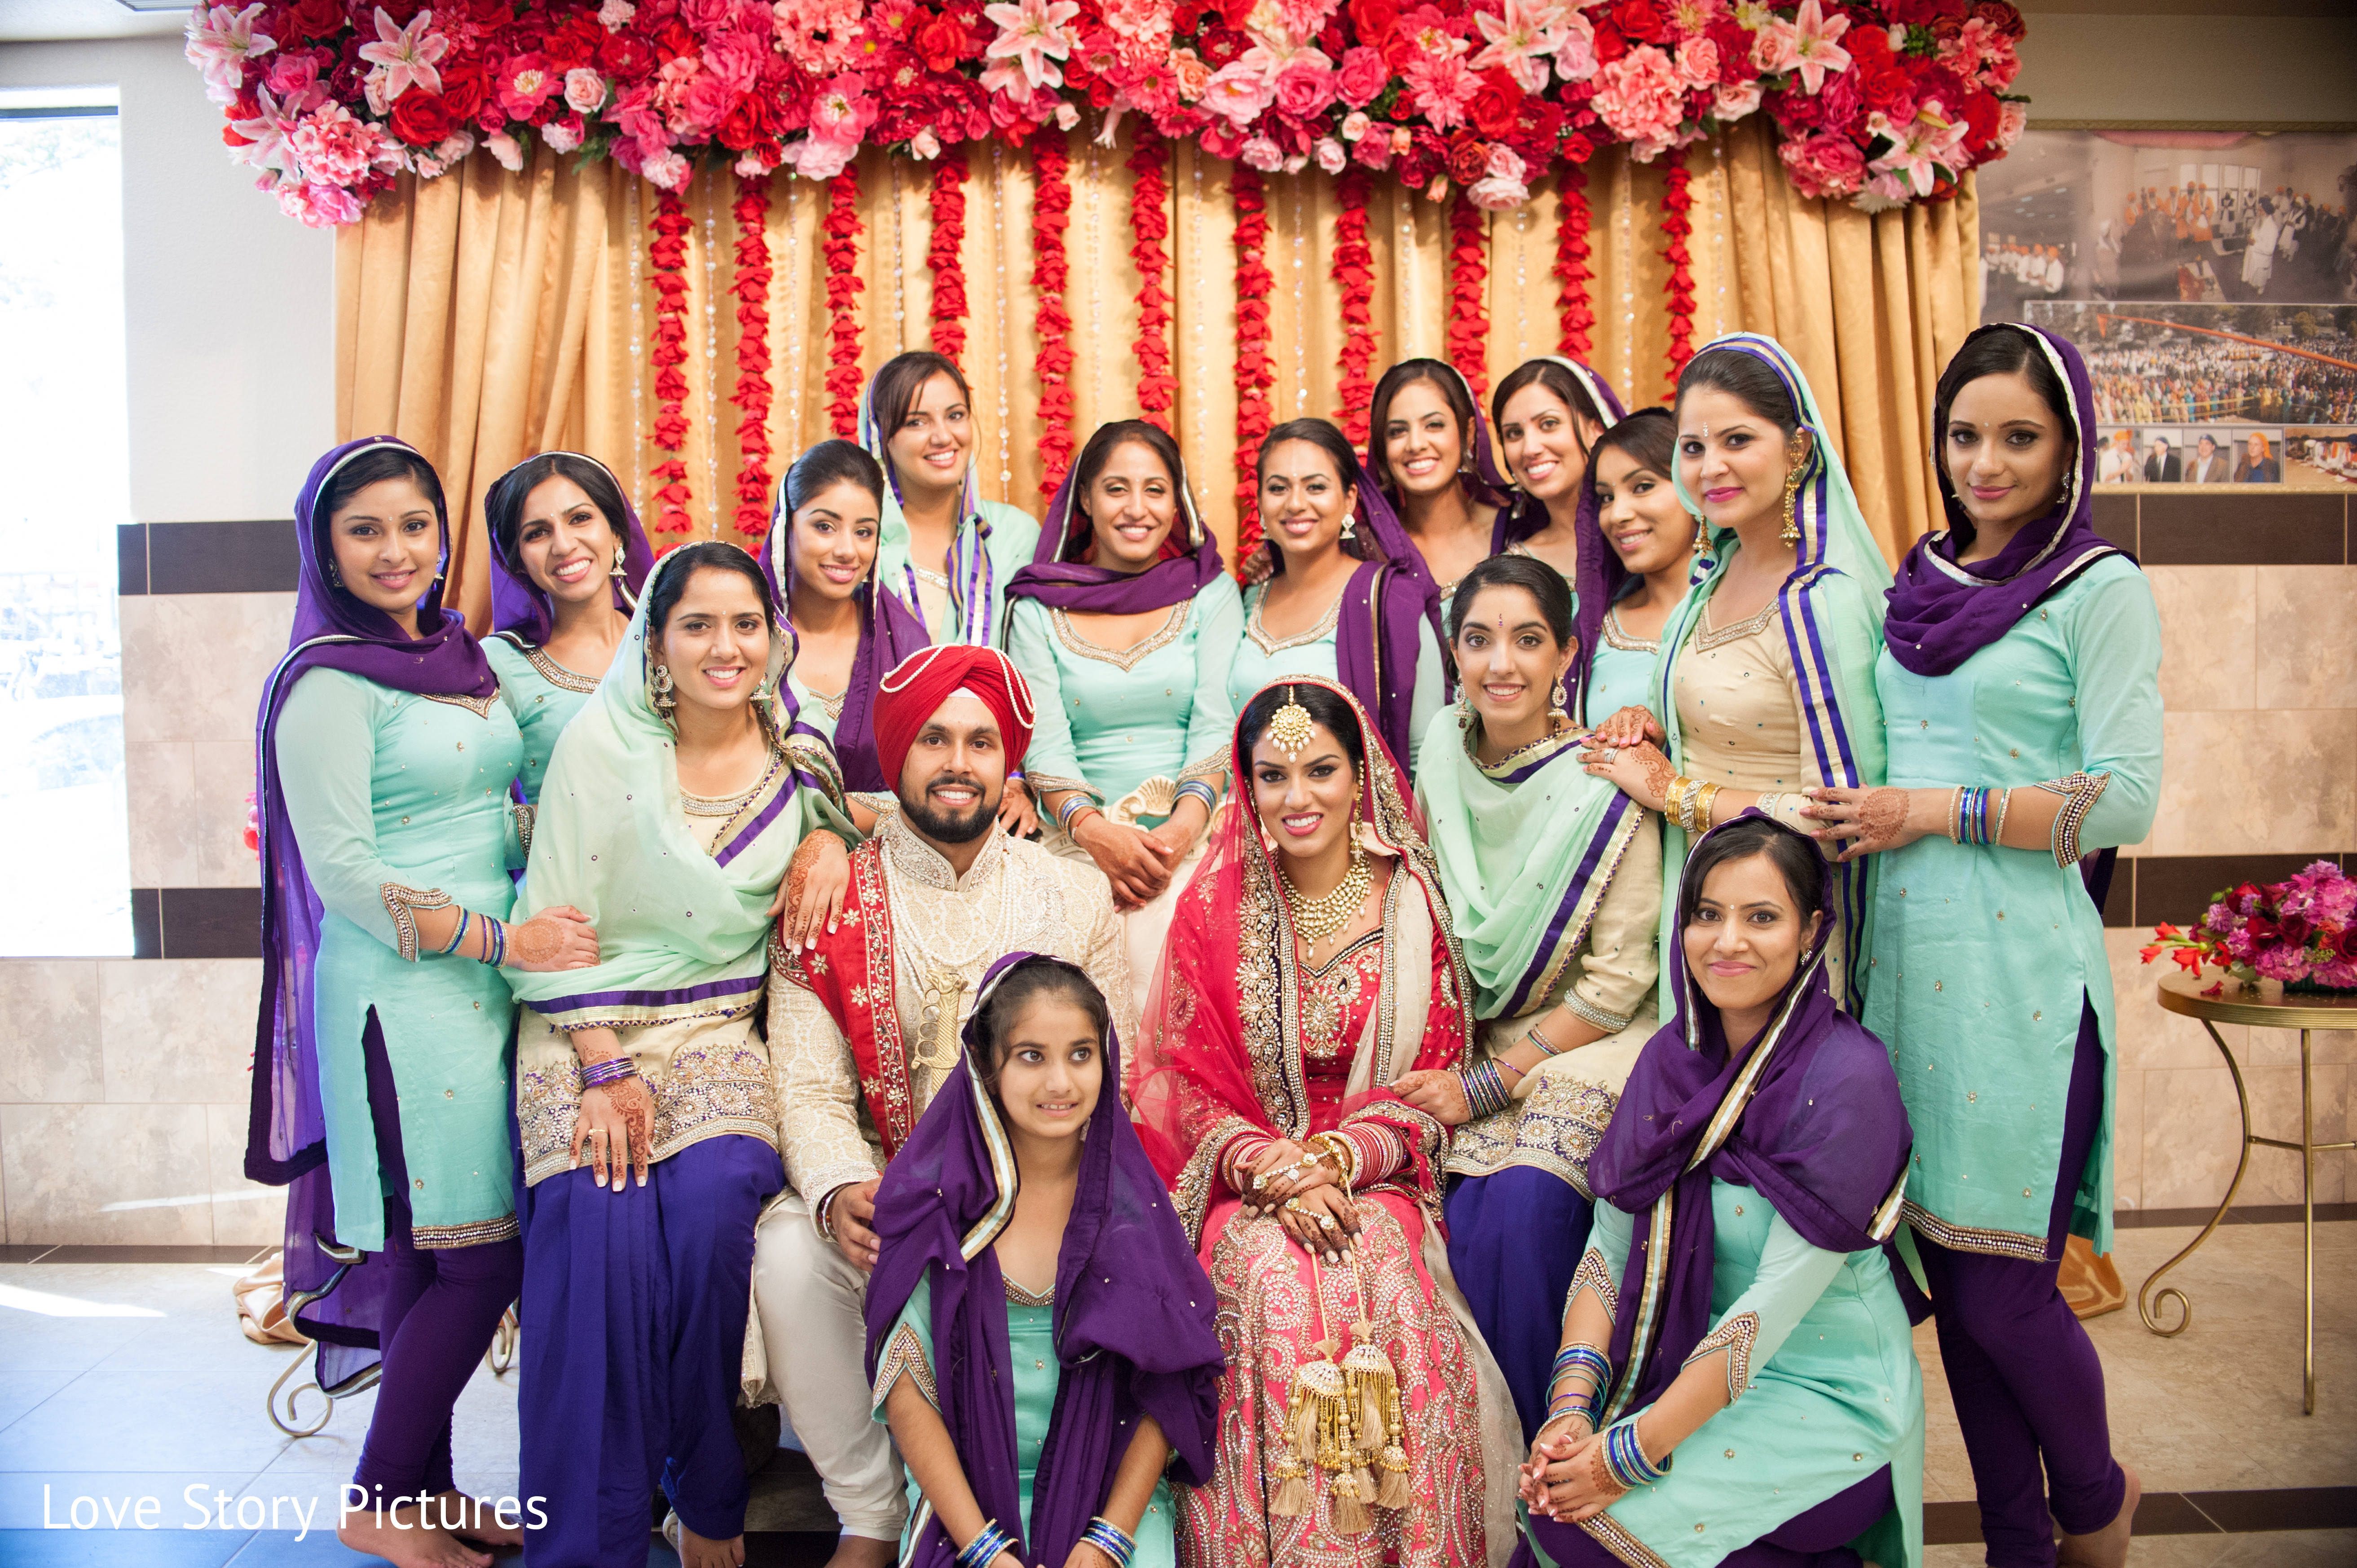 Bridal Party In Sacramento CA Indian Wedding By Love Story Pictures